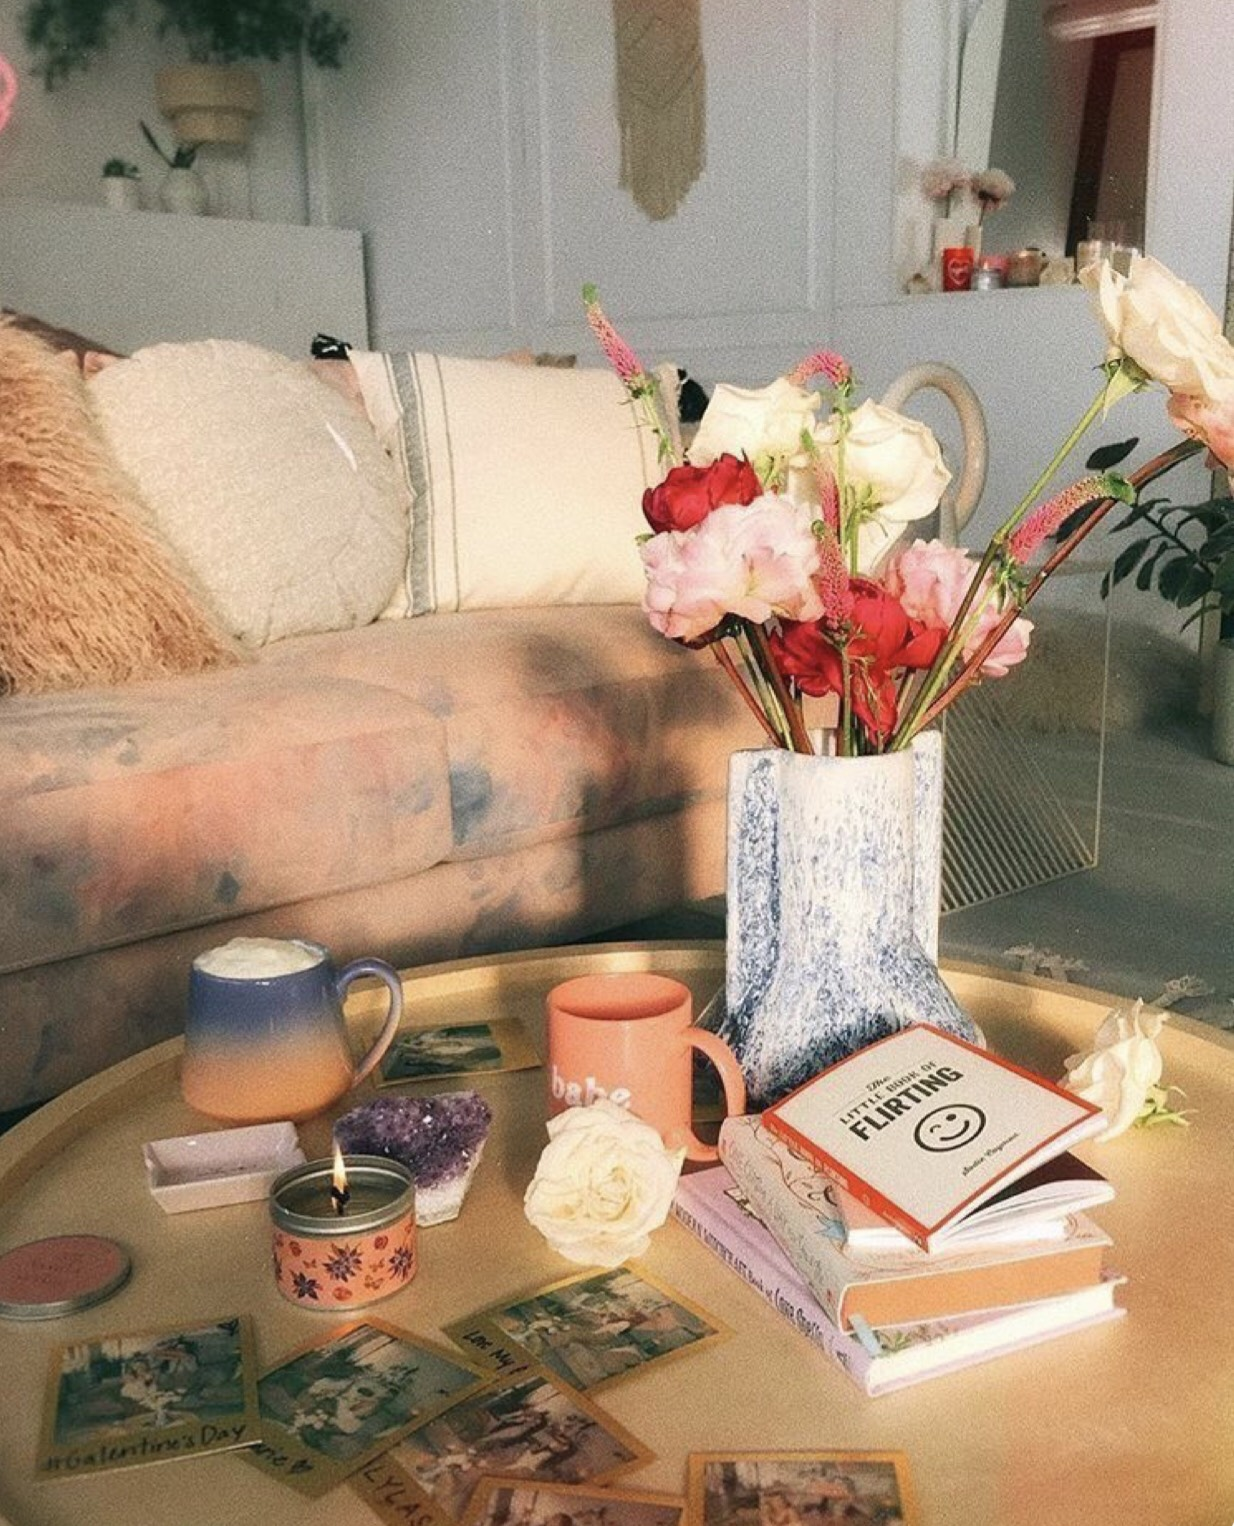 stylish, boho, lived-in living room with flowers